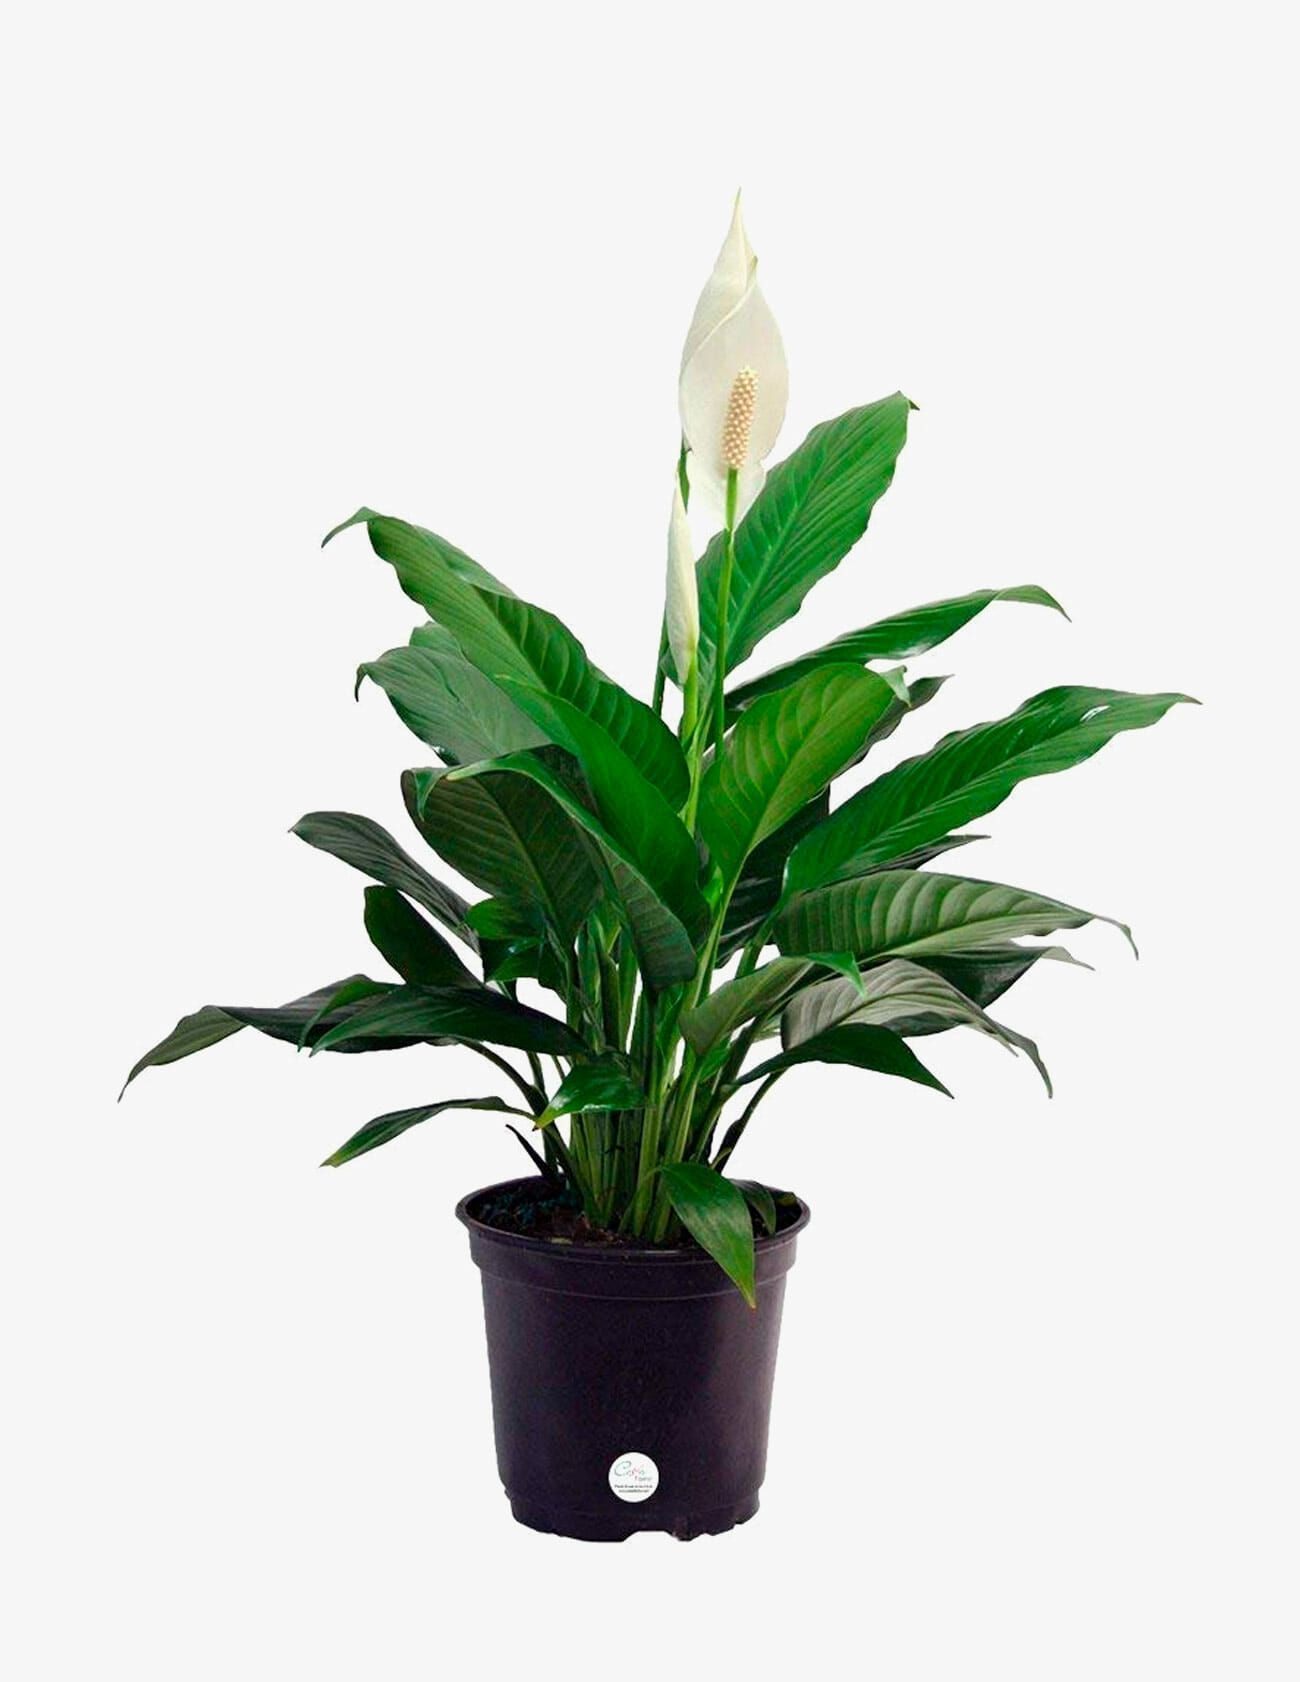 The 10 Best Indoor Plants for Every Kind of Person • Gear Patrol Ideal House Plants on wrightsville house, american girl house, easy clean house, beach house, home small modern house, fluff house, palladium house, gearhead house, topper house, anthem house, the rat house, average house, perfect house, actual house, dibs house, uncomfortable house, reliance house, mattel house, idea house, immense house,